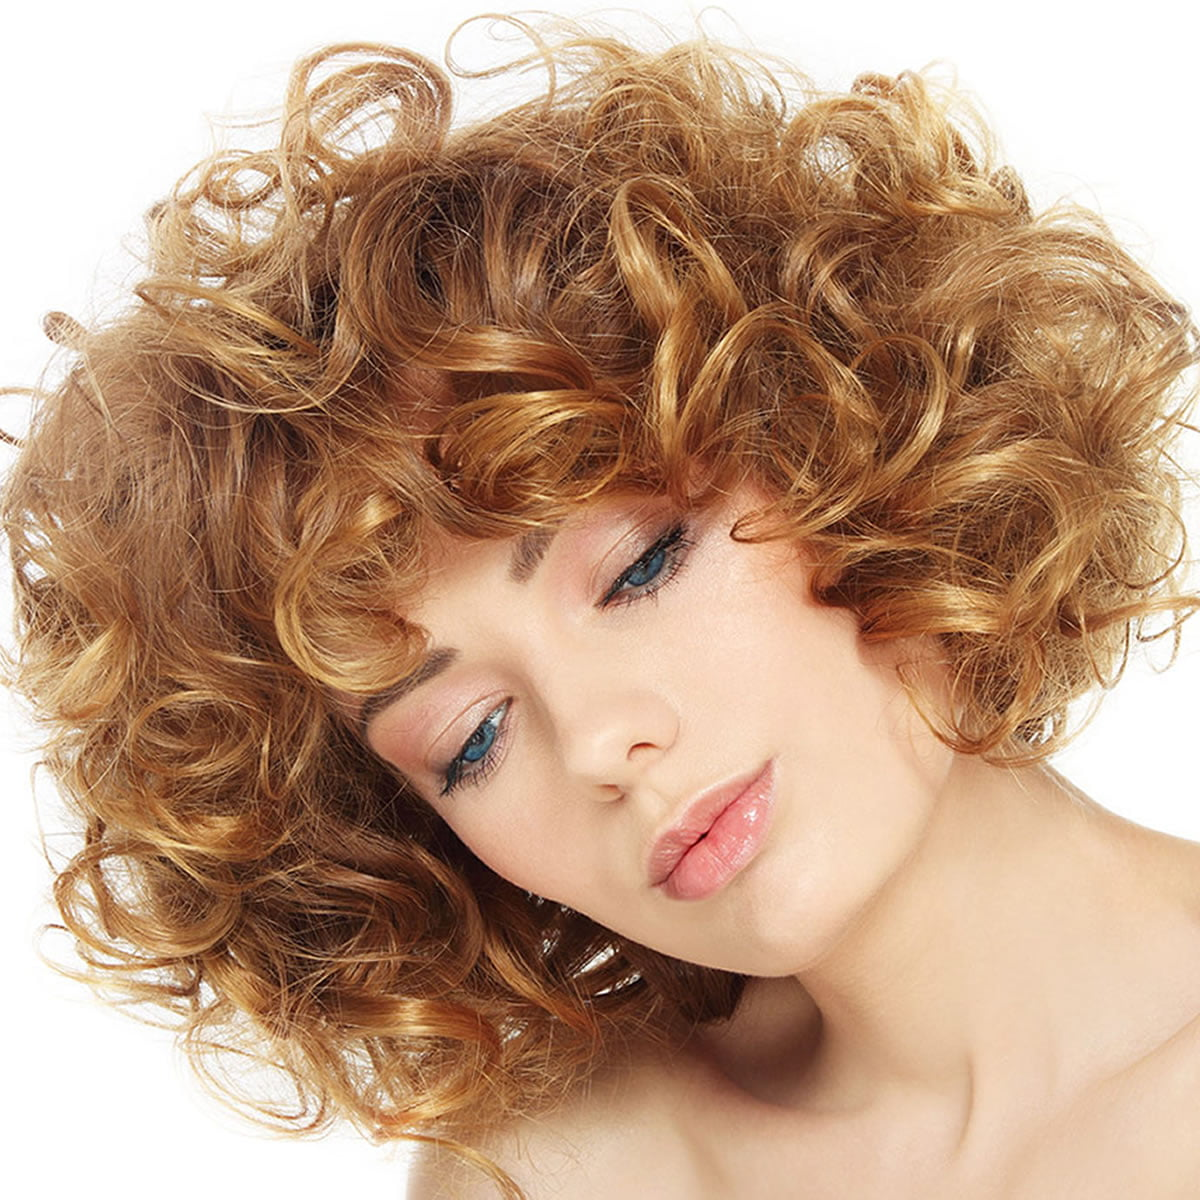 2018 Curly Bob Hairstyles for Women – 17 Perfect Short Hair | Haircuts